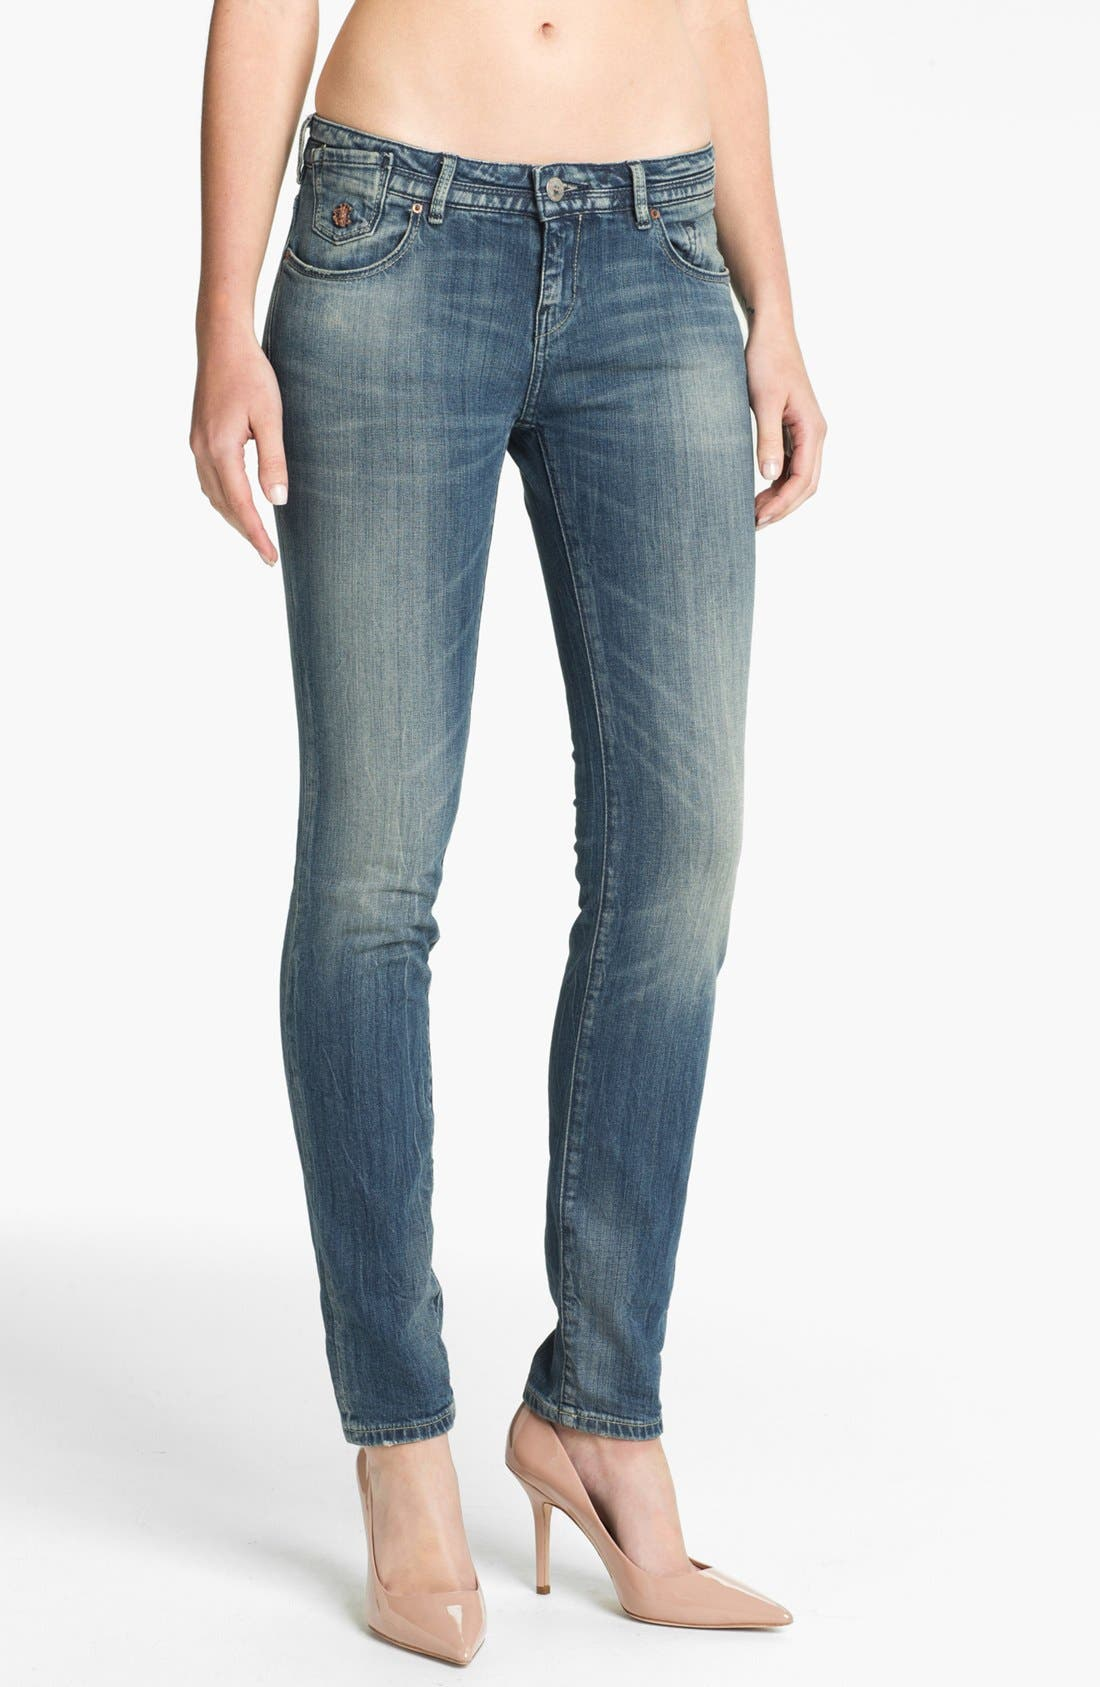 Alternate Image 1 Selected - Maison Scotch 'La Parisienne' Bleach Washed Skinny Jeans (Bleutiful)